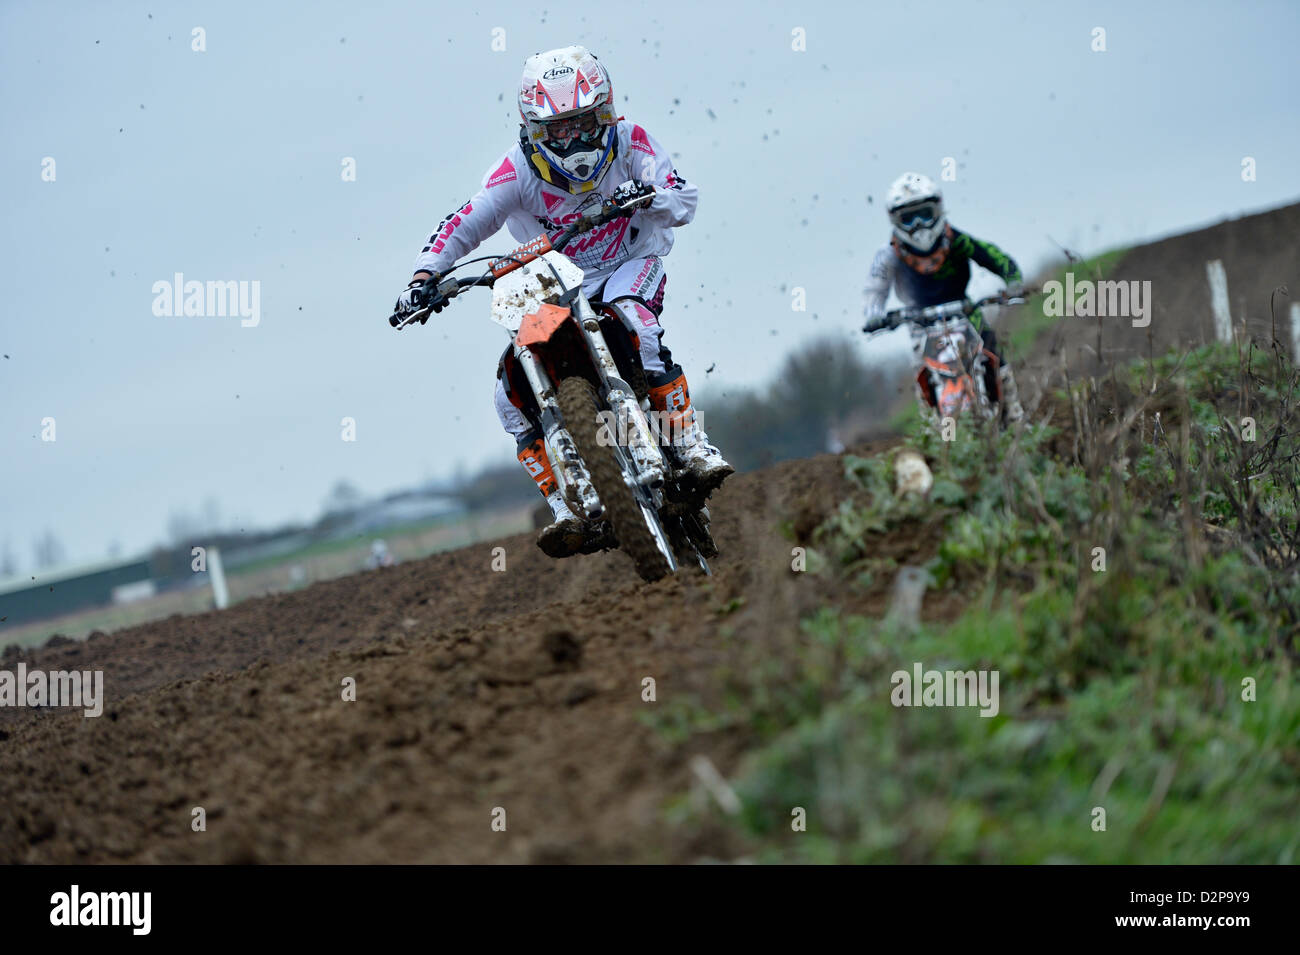 Motocross riders on a motocross built track - Stock Image